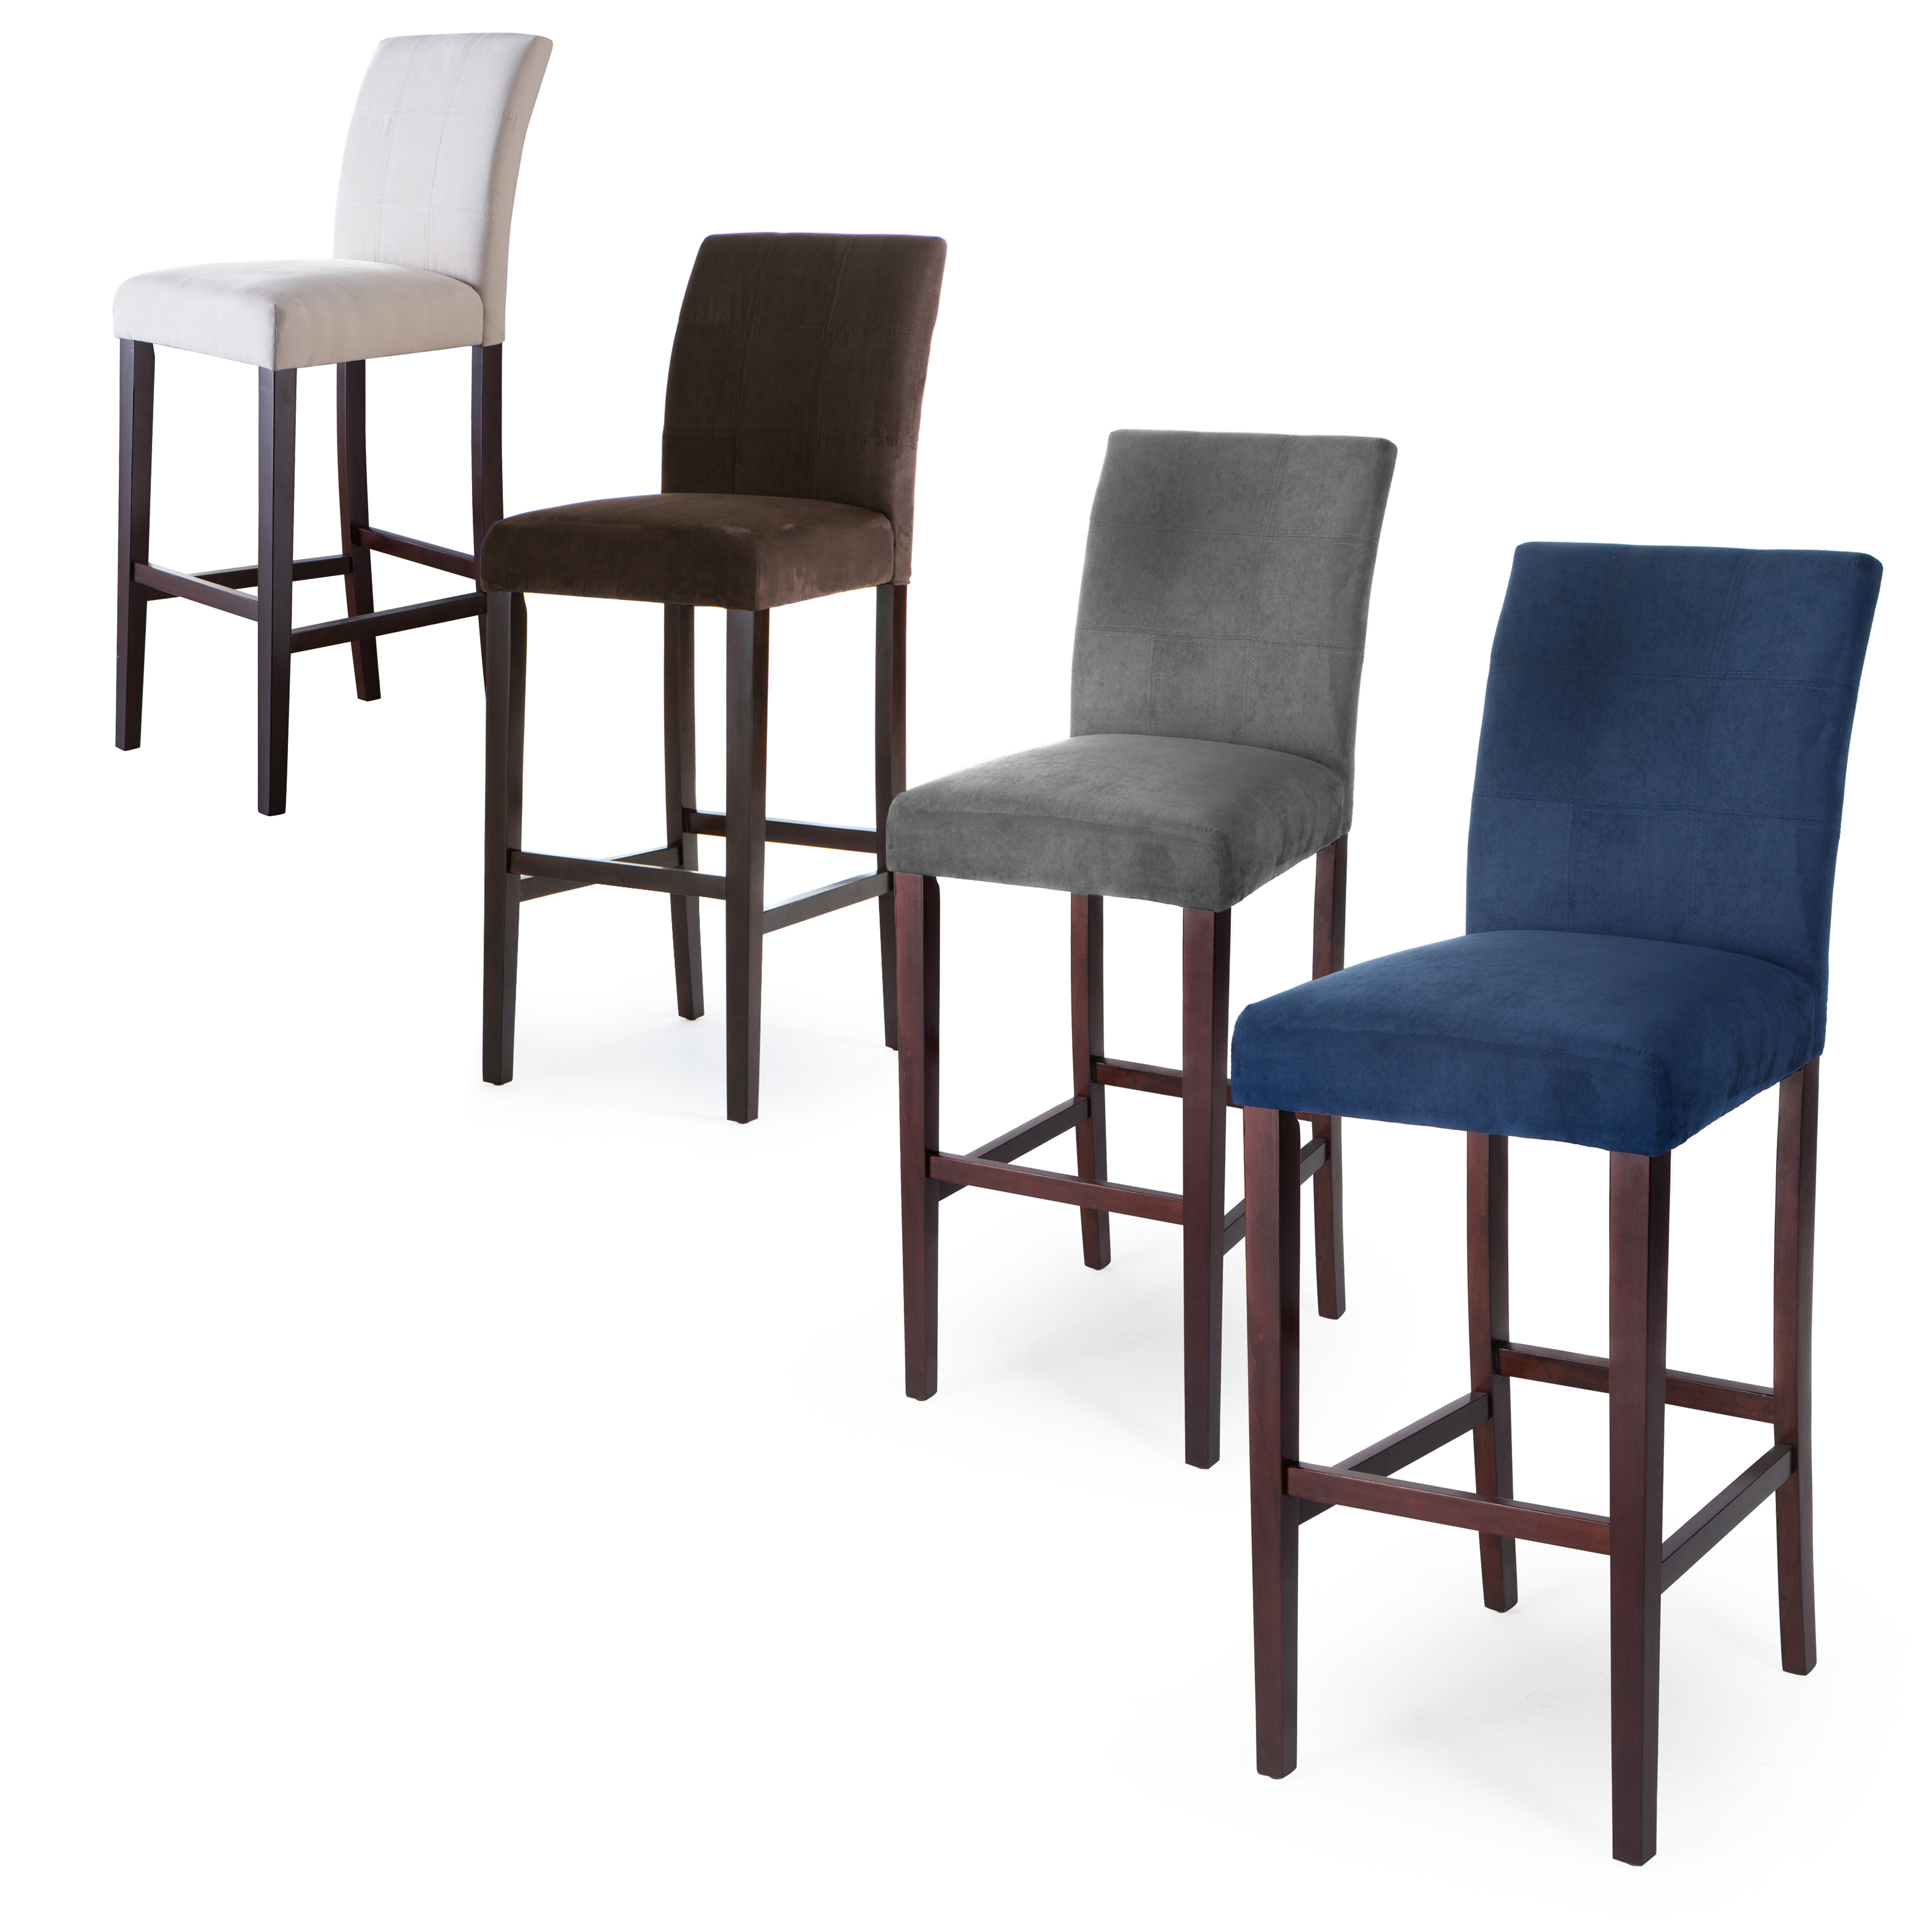 Palazzo inch extra tall bar stool set of